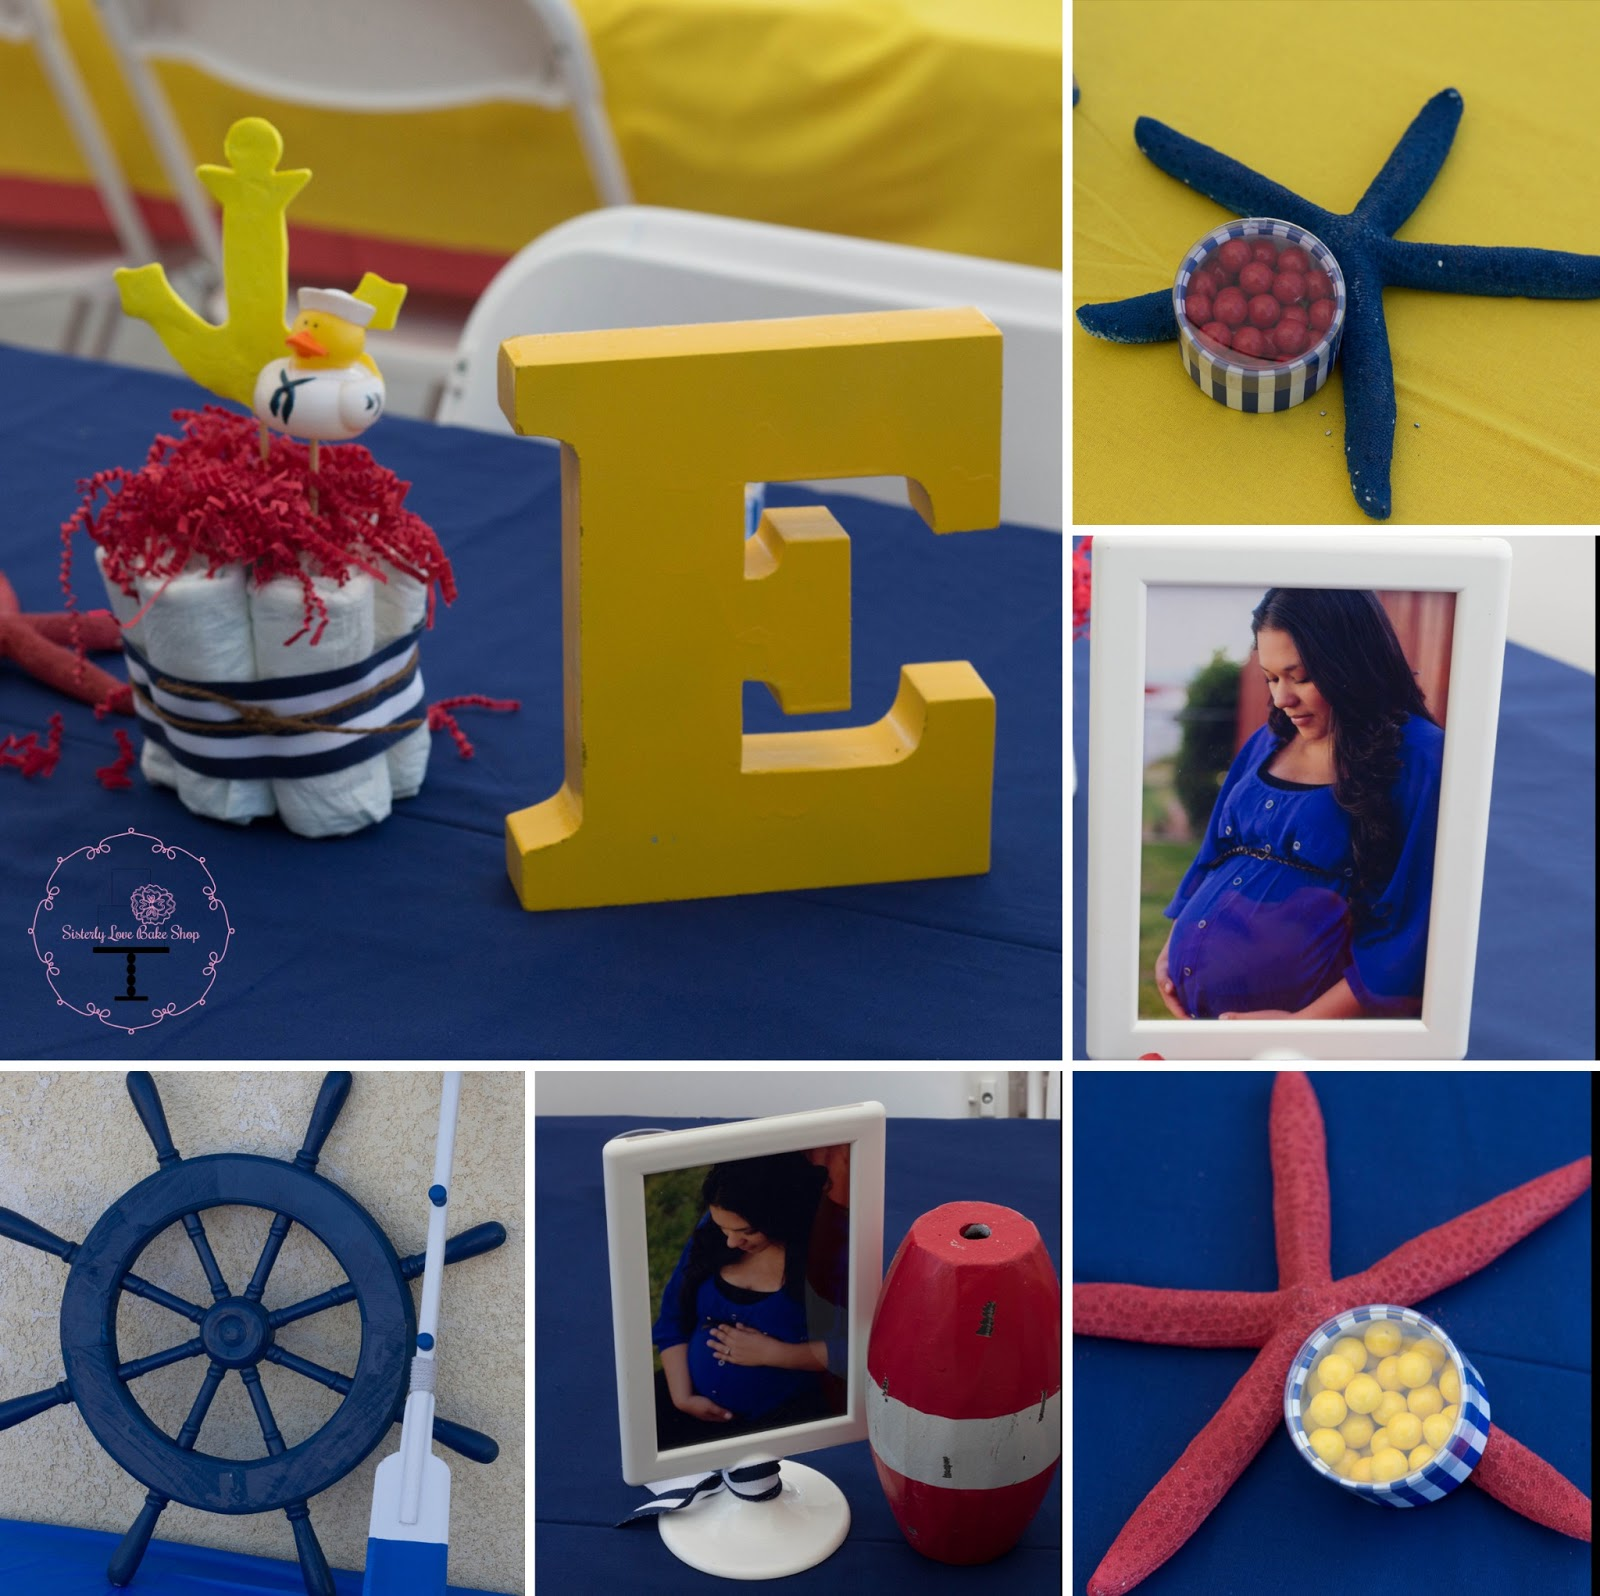 Pastel Cake Design Part 3 Nautical Baby Shower Decor